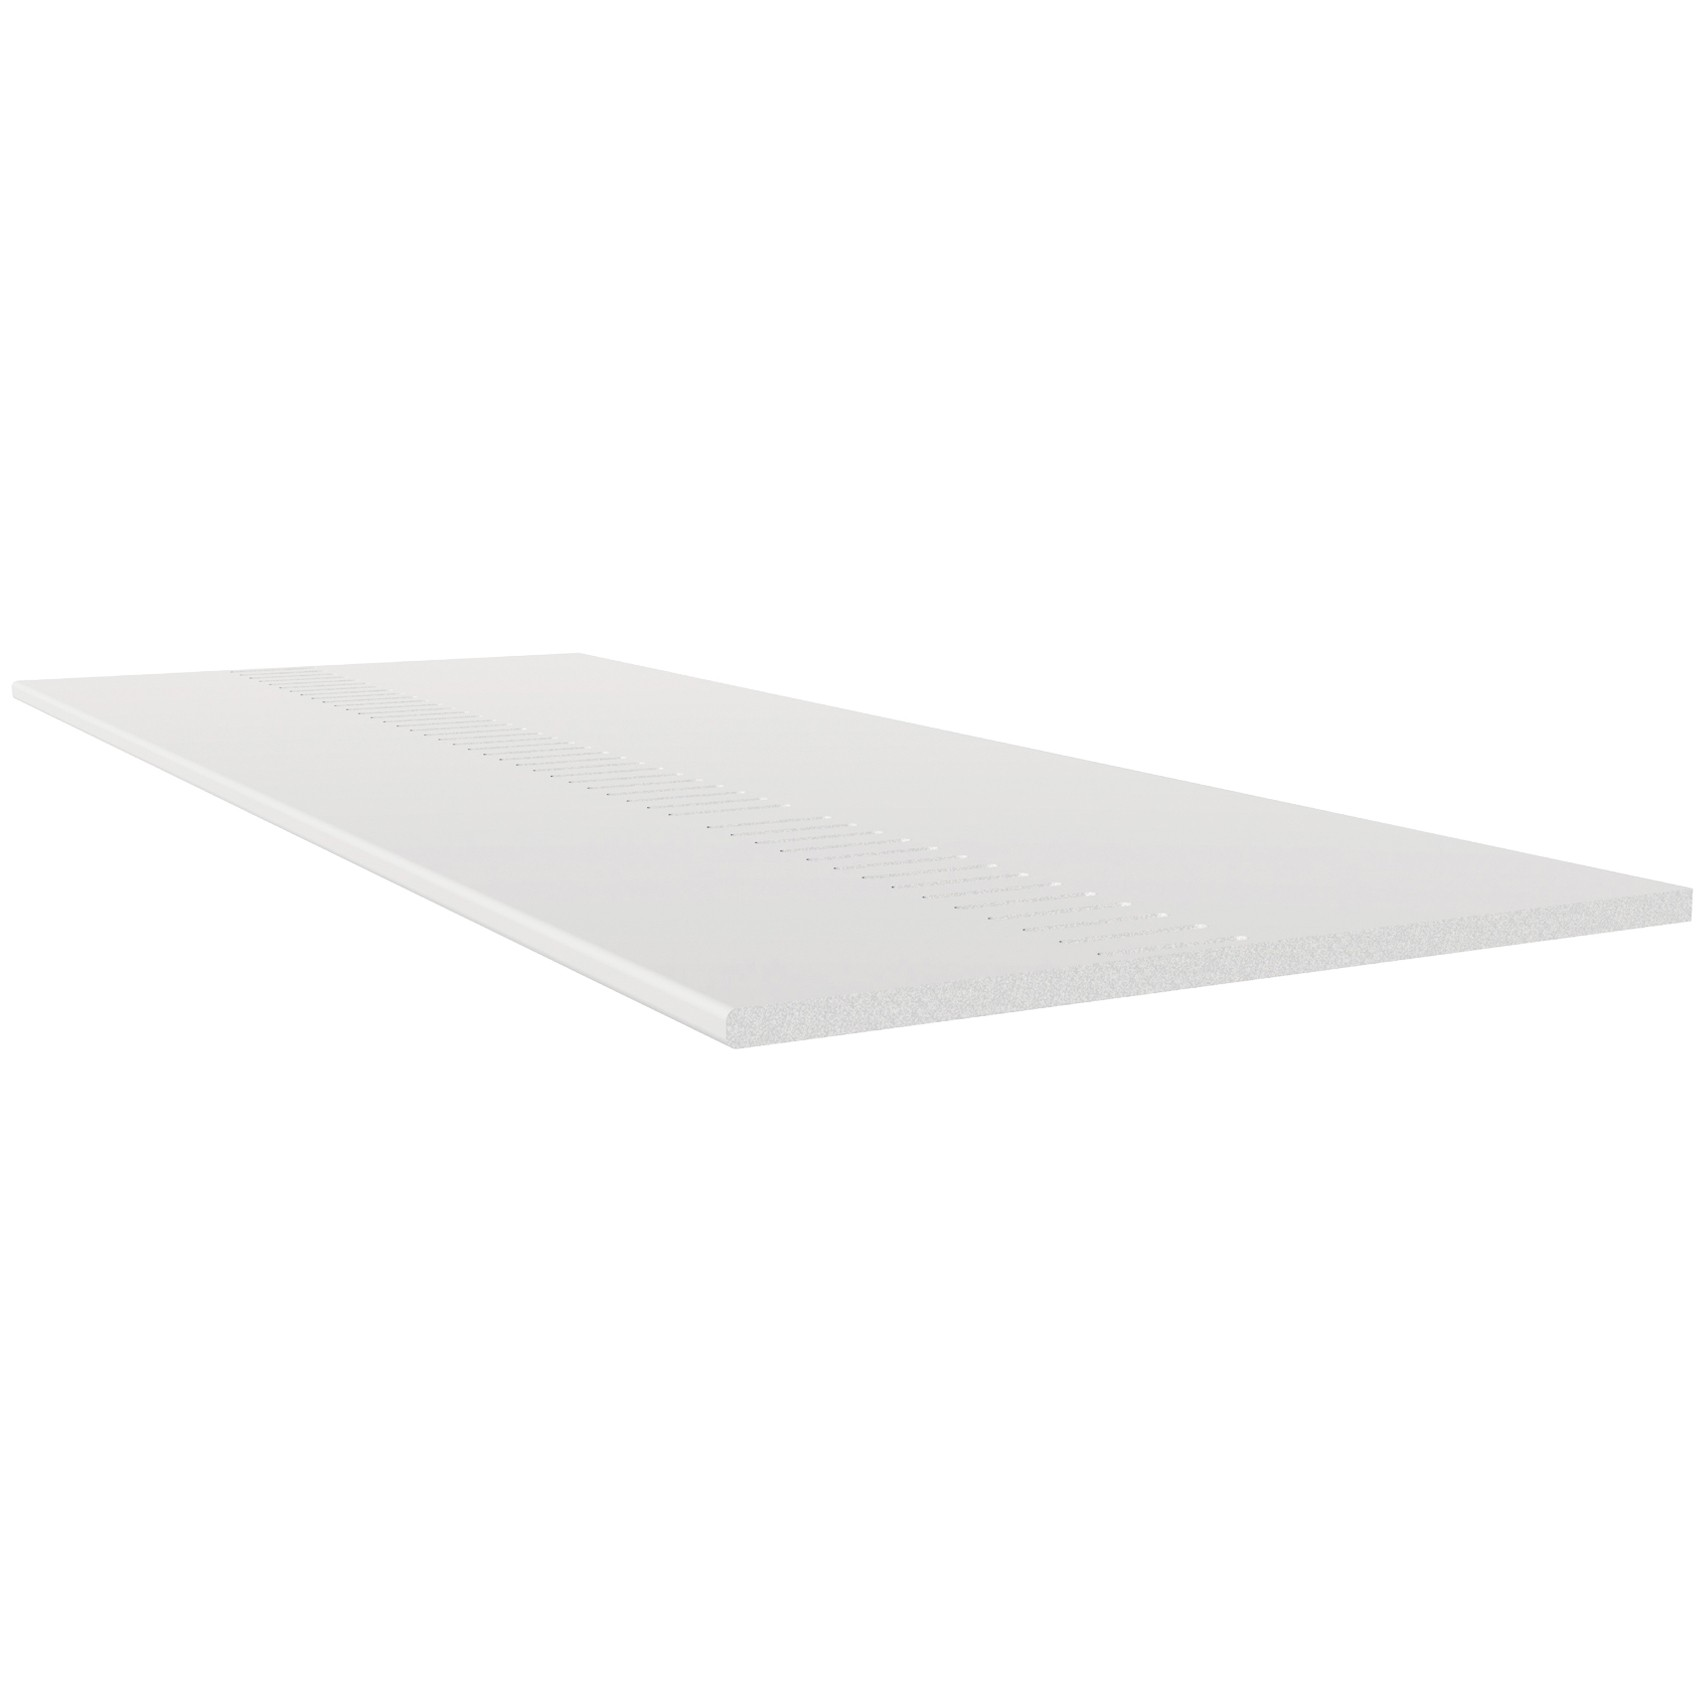 Freefoam Pre Vented 10mm Solid Soffit Board - White, 350mm, 5 metre